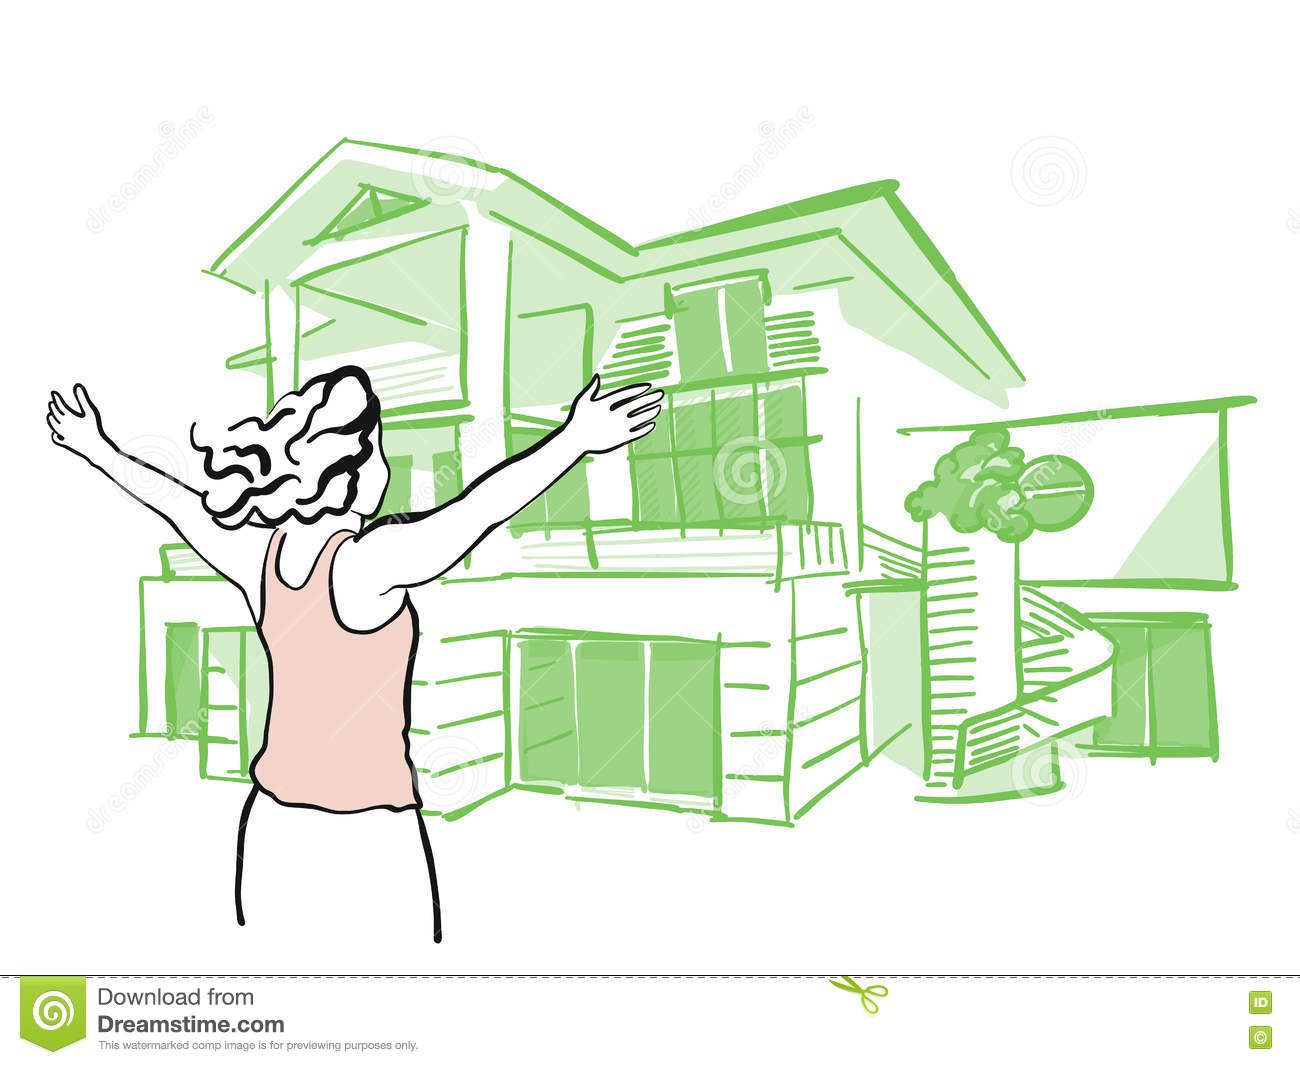 Woman is pulling arms upwards in front of dream house stock illustration